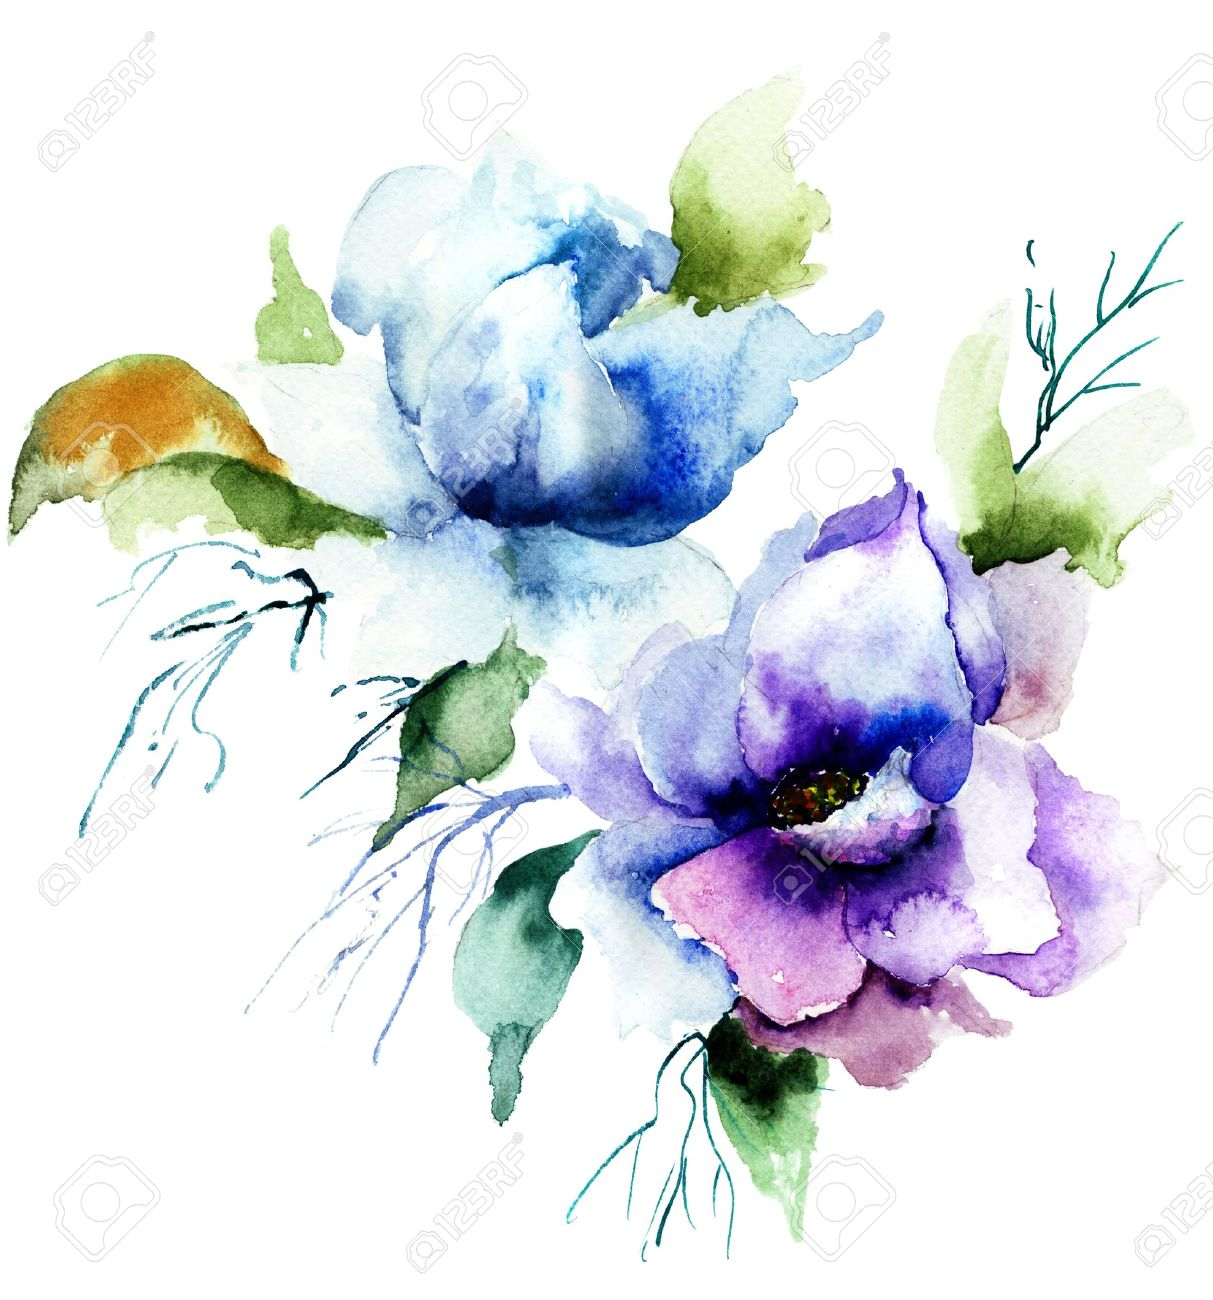 Beautiful Blue Flower Watercolor Painting Stock Photo Picture And Royalty Free Image Image 21202997